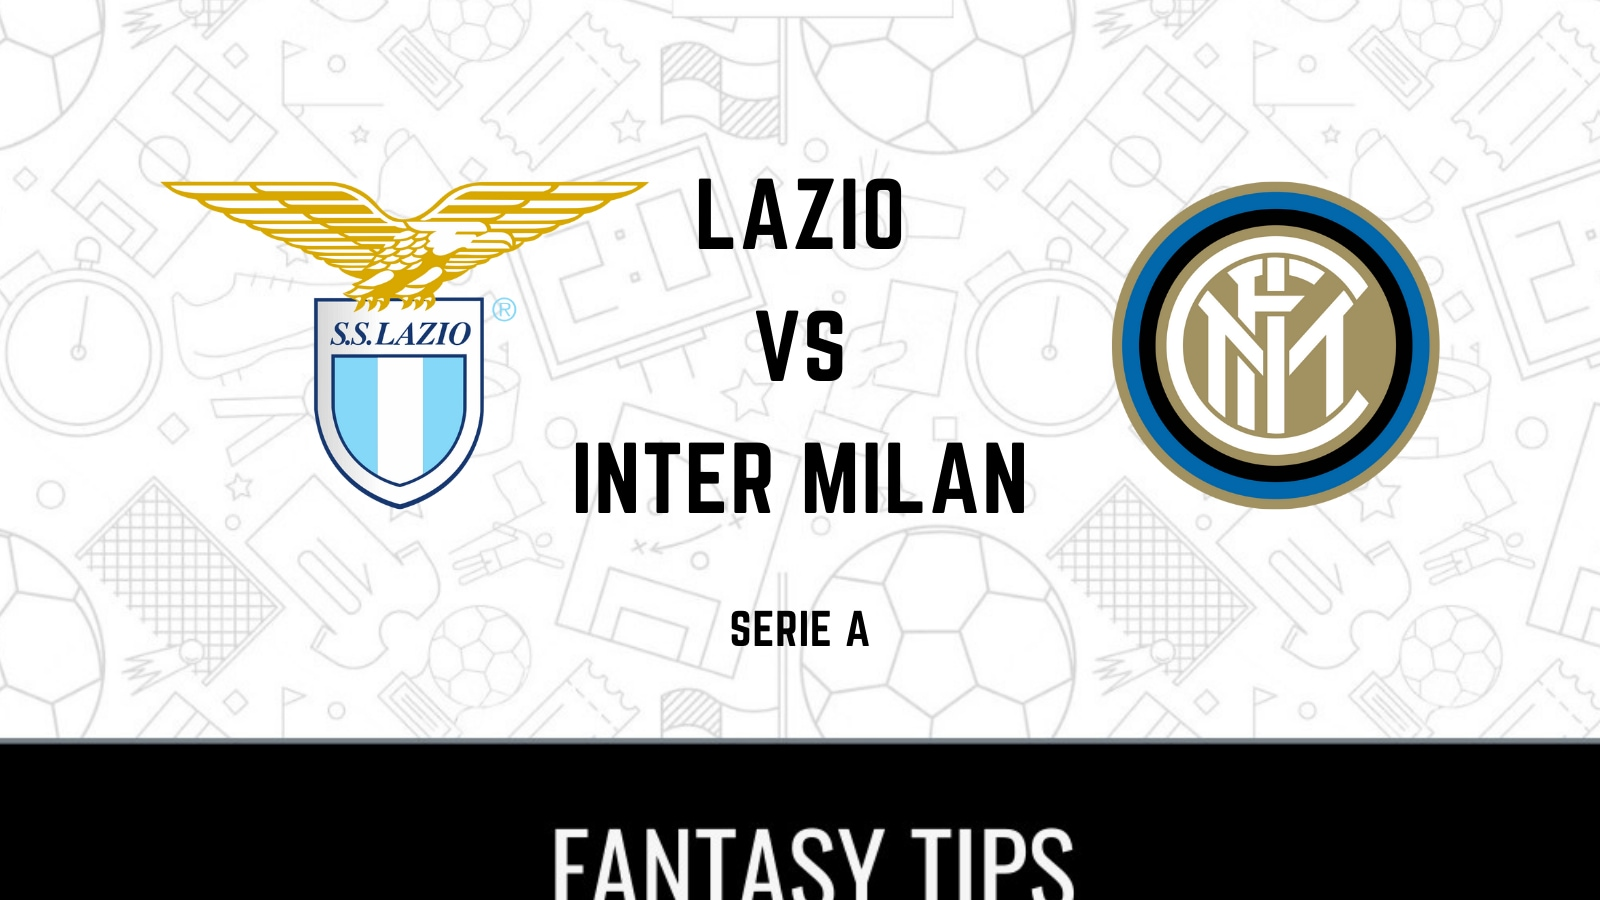 LAZ vs INT Dream11 Team Prediction and Tips for today's Serie A match: Check Captain, Vice-Captain and probable playing XIs for today's Serie A match Lazio vs Inter Milan October 16 2130 IST